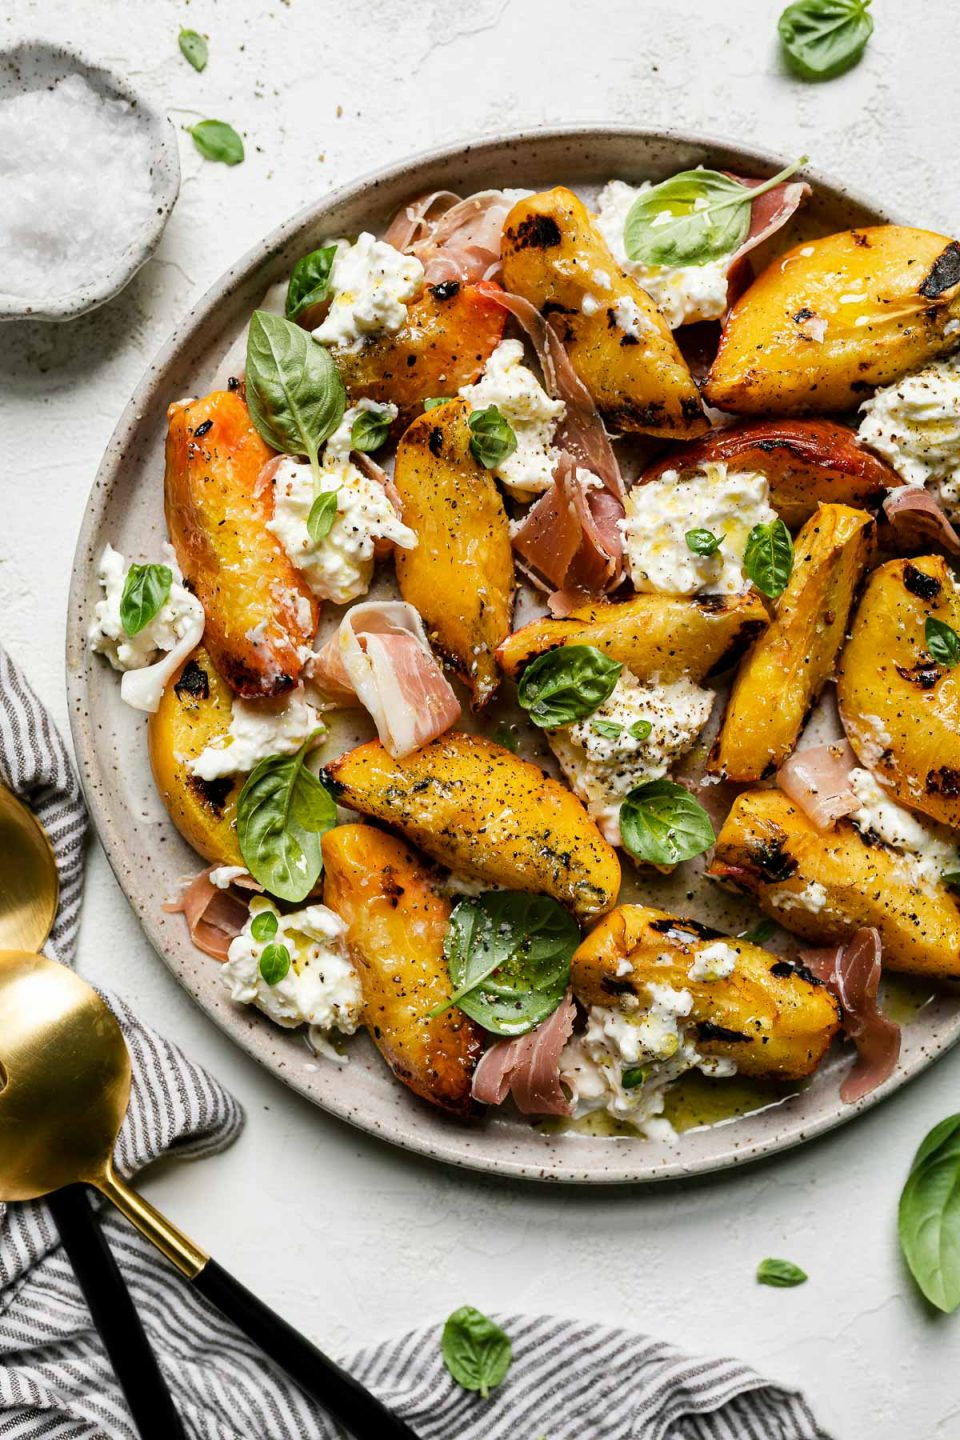 Grilled peaches, burrata cheese, fresh basil, & thinly sliced prosciutto arranged on a ceramic plate atop a textured white surface. Surrounding the grilled peach salad are fresh basil leaves, a small bowl of flaky salt, a gray striped linen napkin, & large serving spoons.